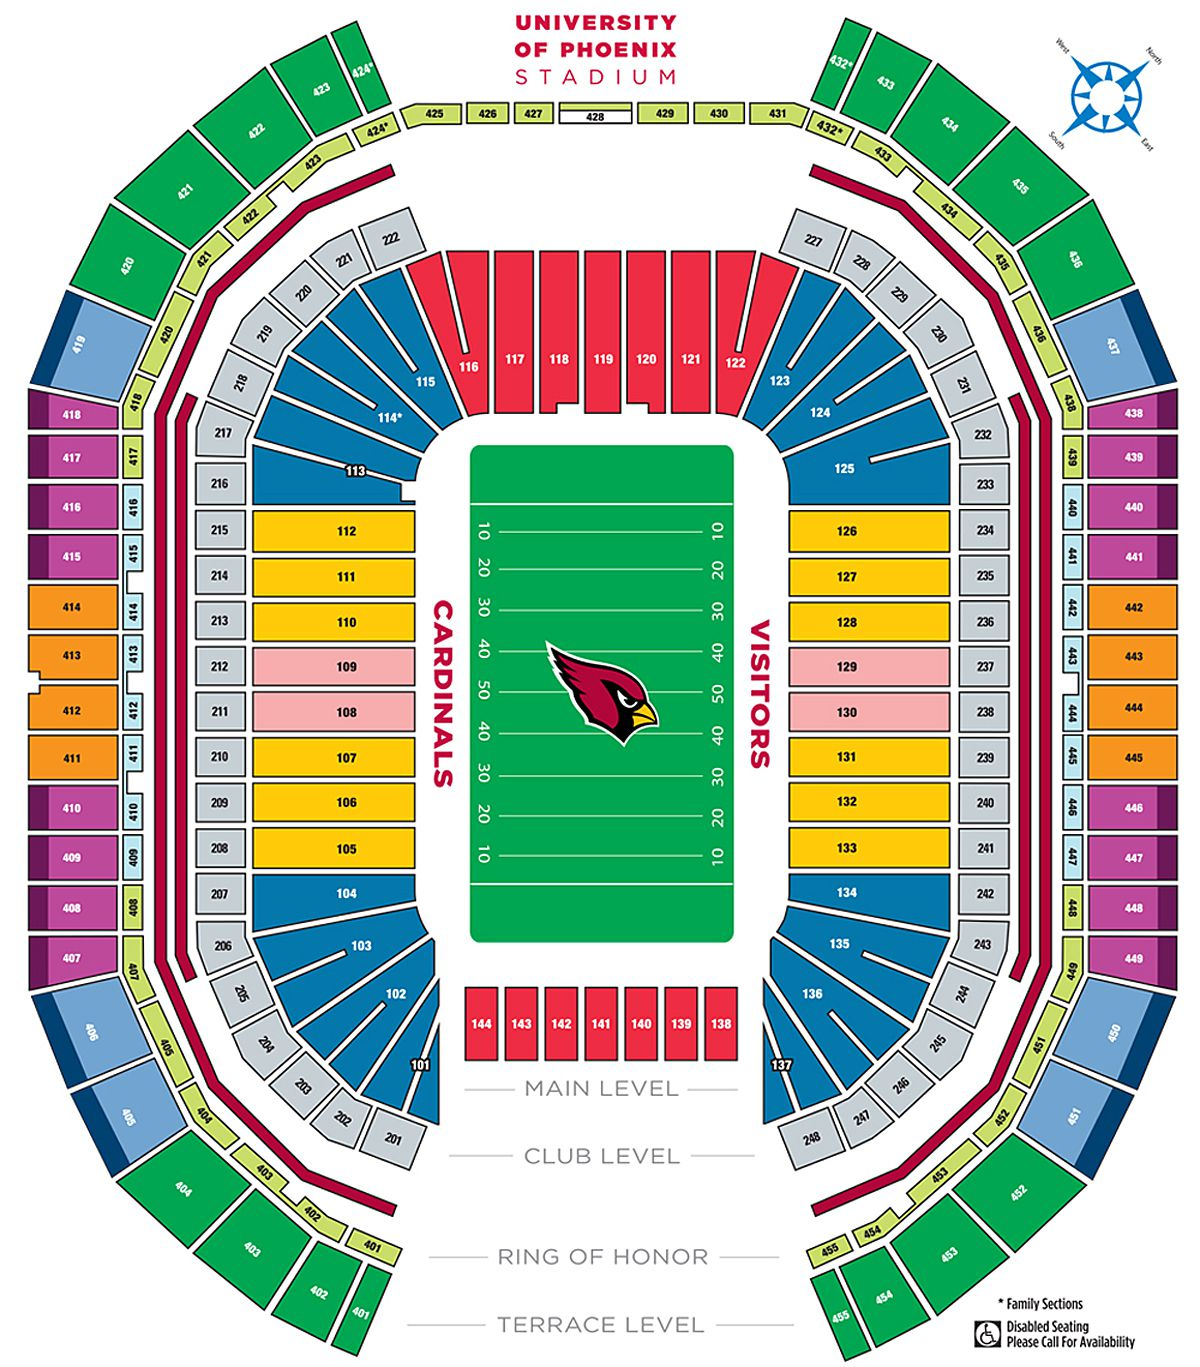 19 Best Of University Of Phoenix Stadium Seating Chart with Seat Numbers